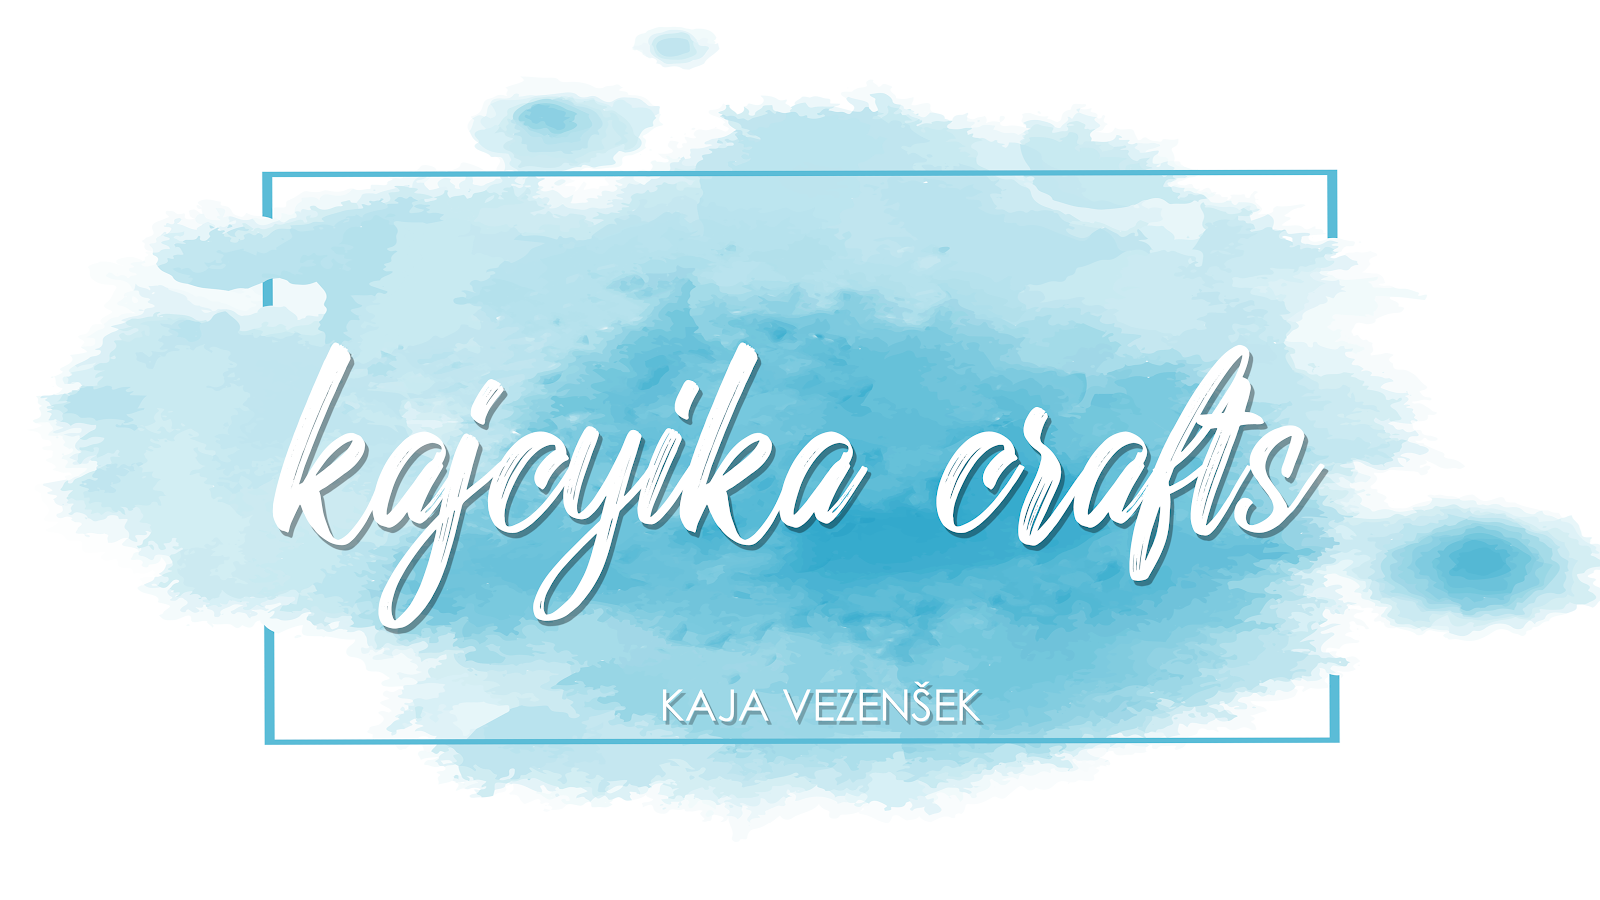 Kajcyika crafts